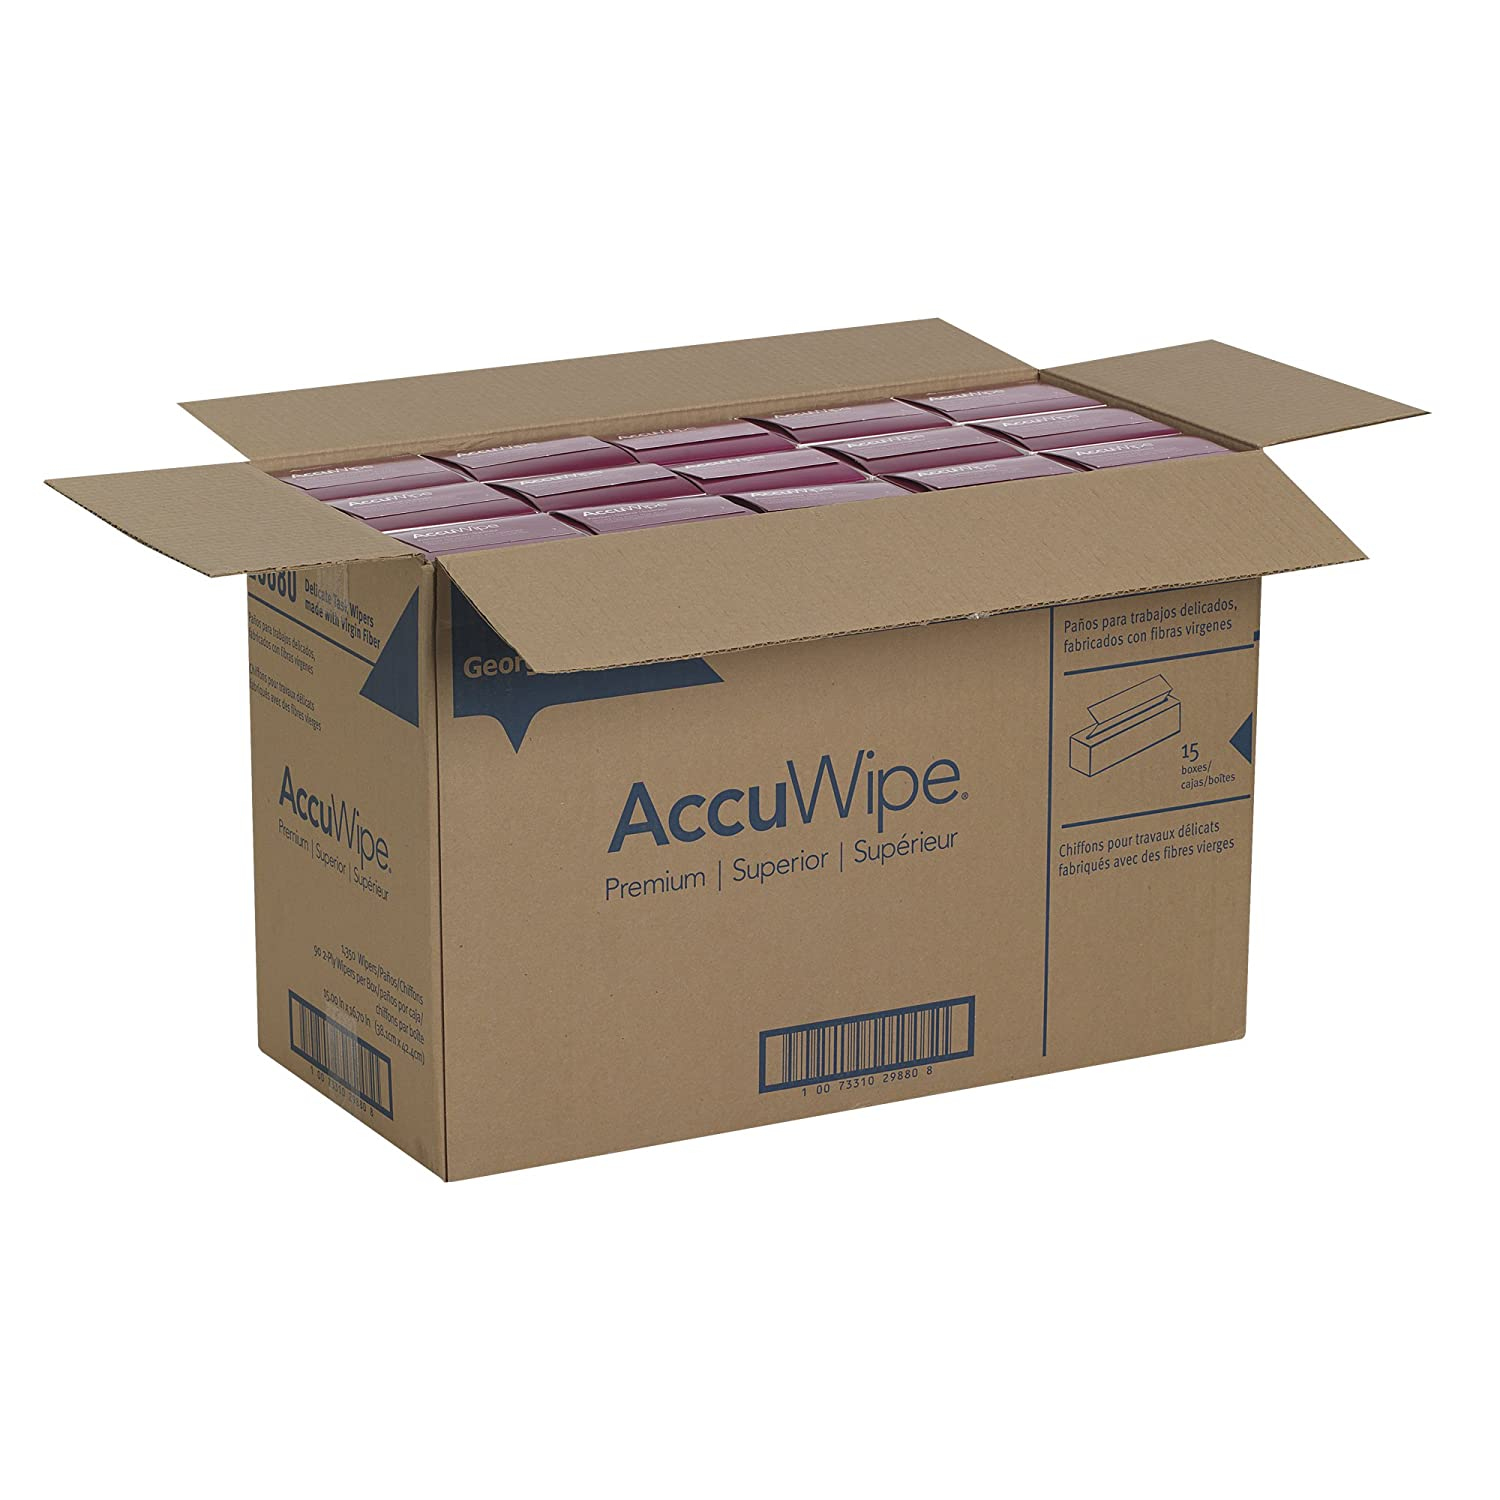 Amazon.com: Georgia-Pacific AccuWipe 29880 White Virgin Fiber Premium 2-Ply Delicate Task Wipers, 15